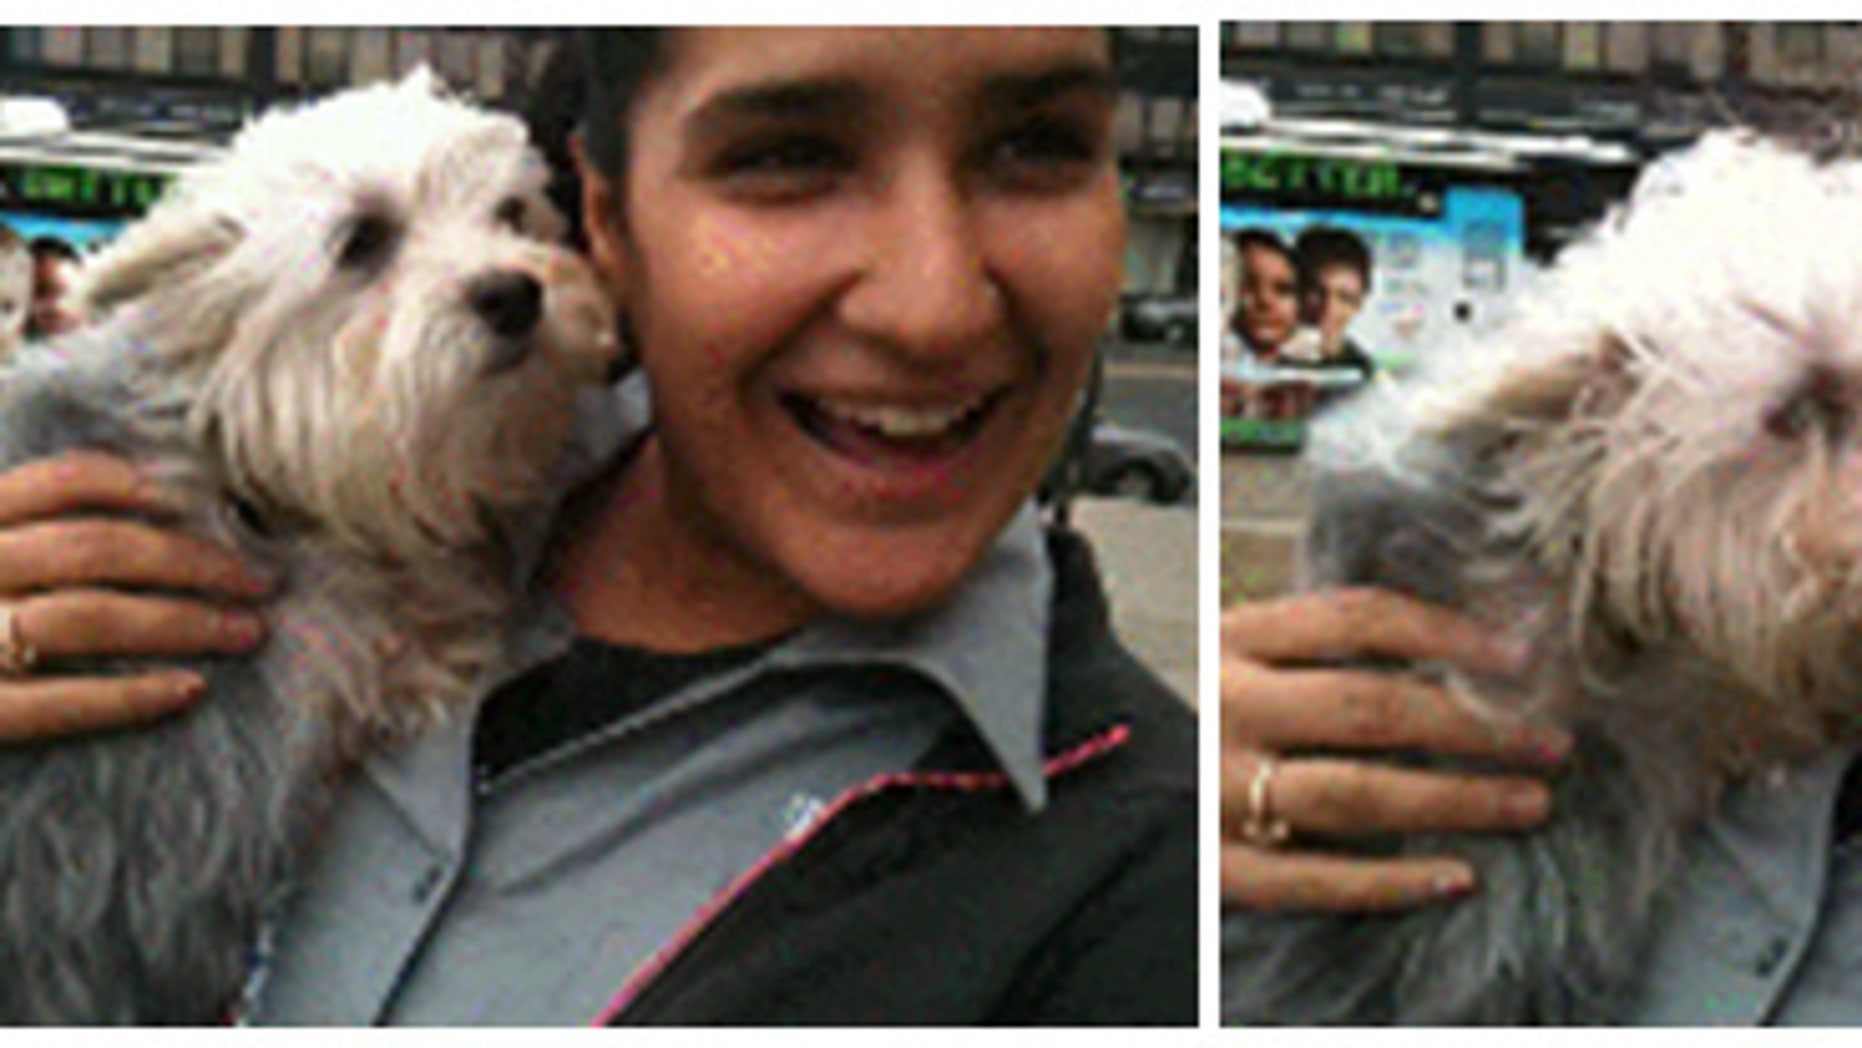 Image of New York woman who stole dog.